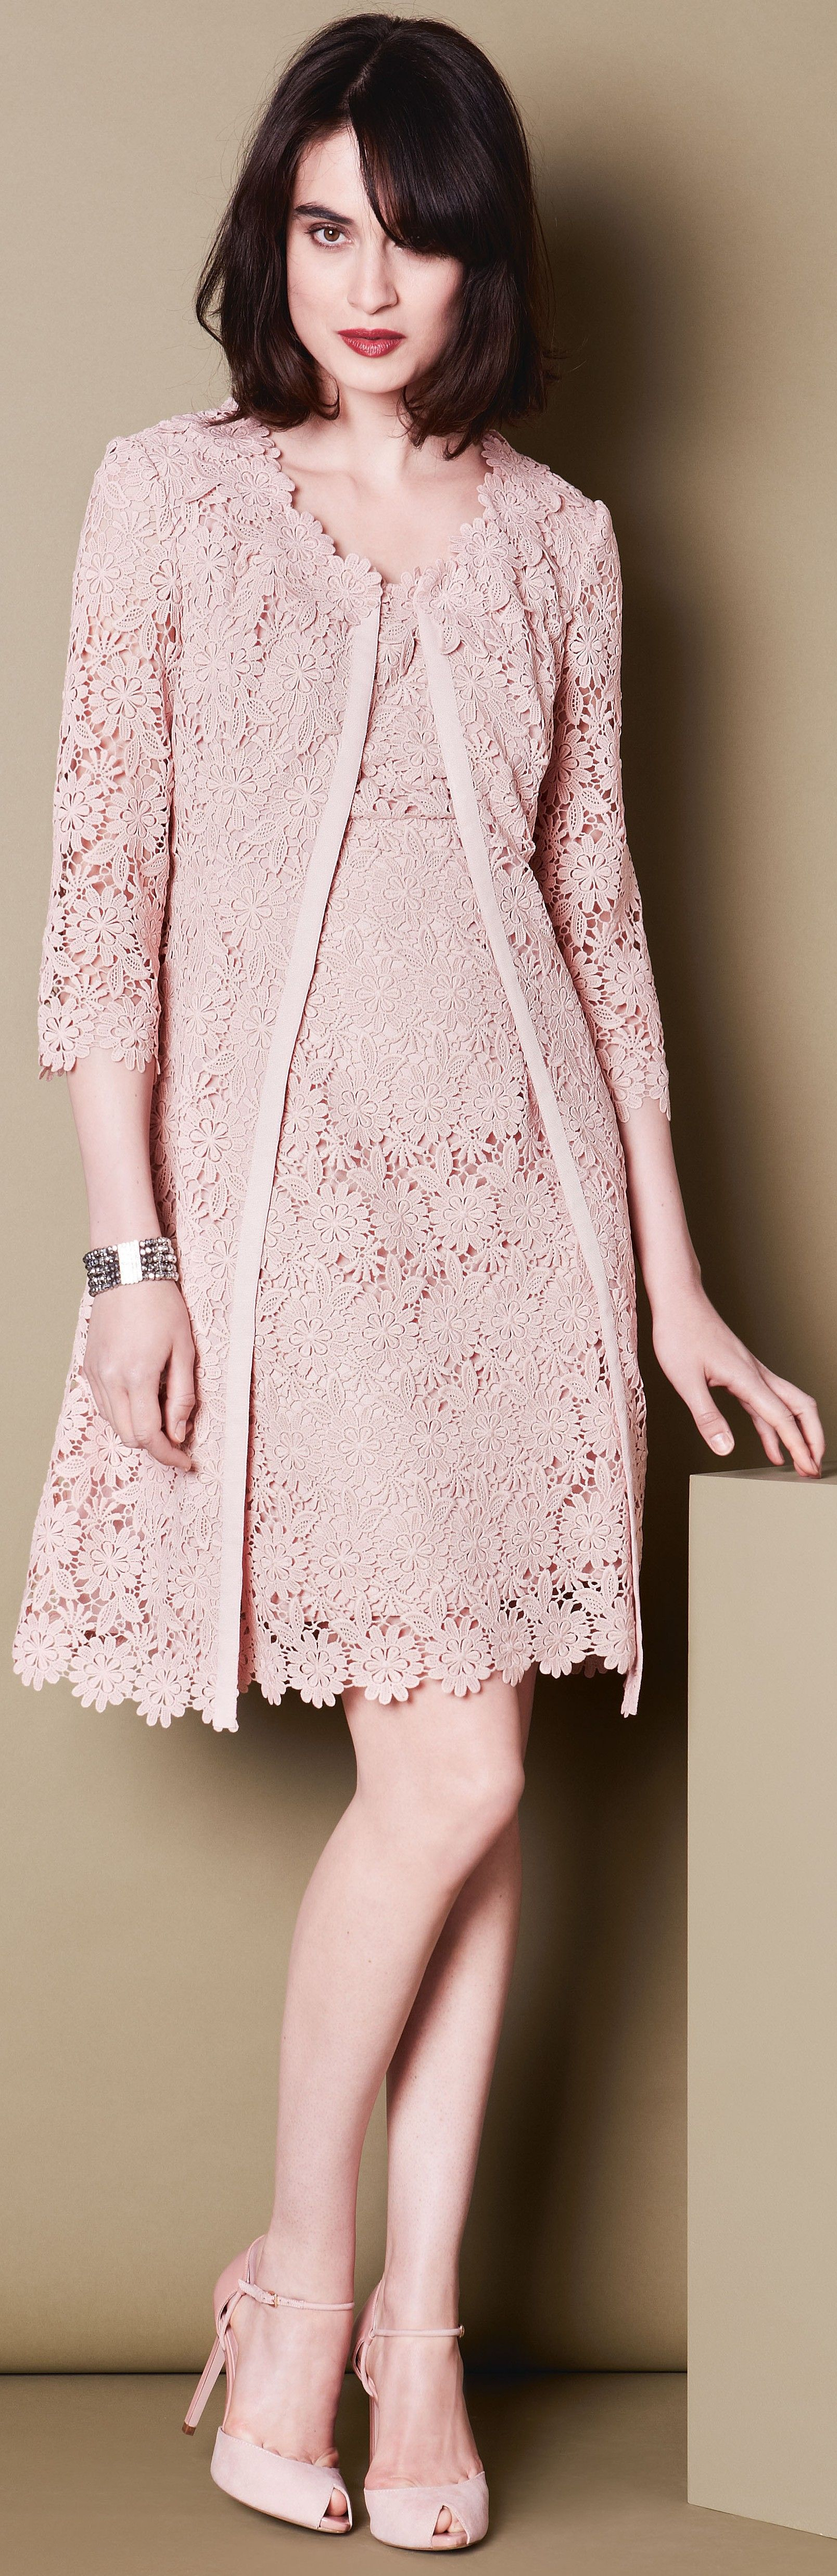 pinky beige / neutral pink lace dress for wedding or event